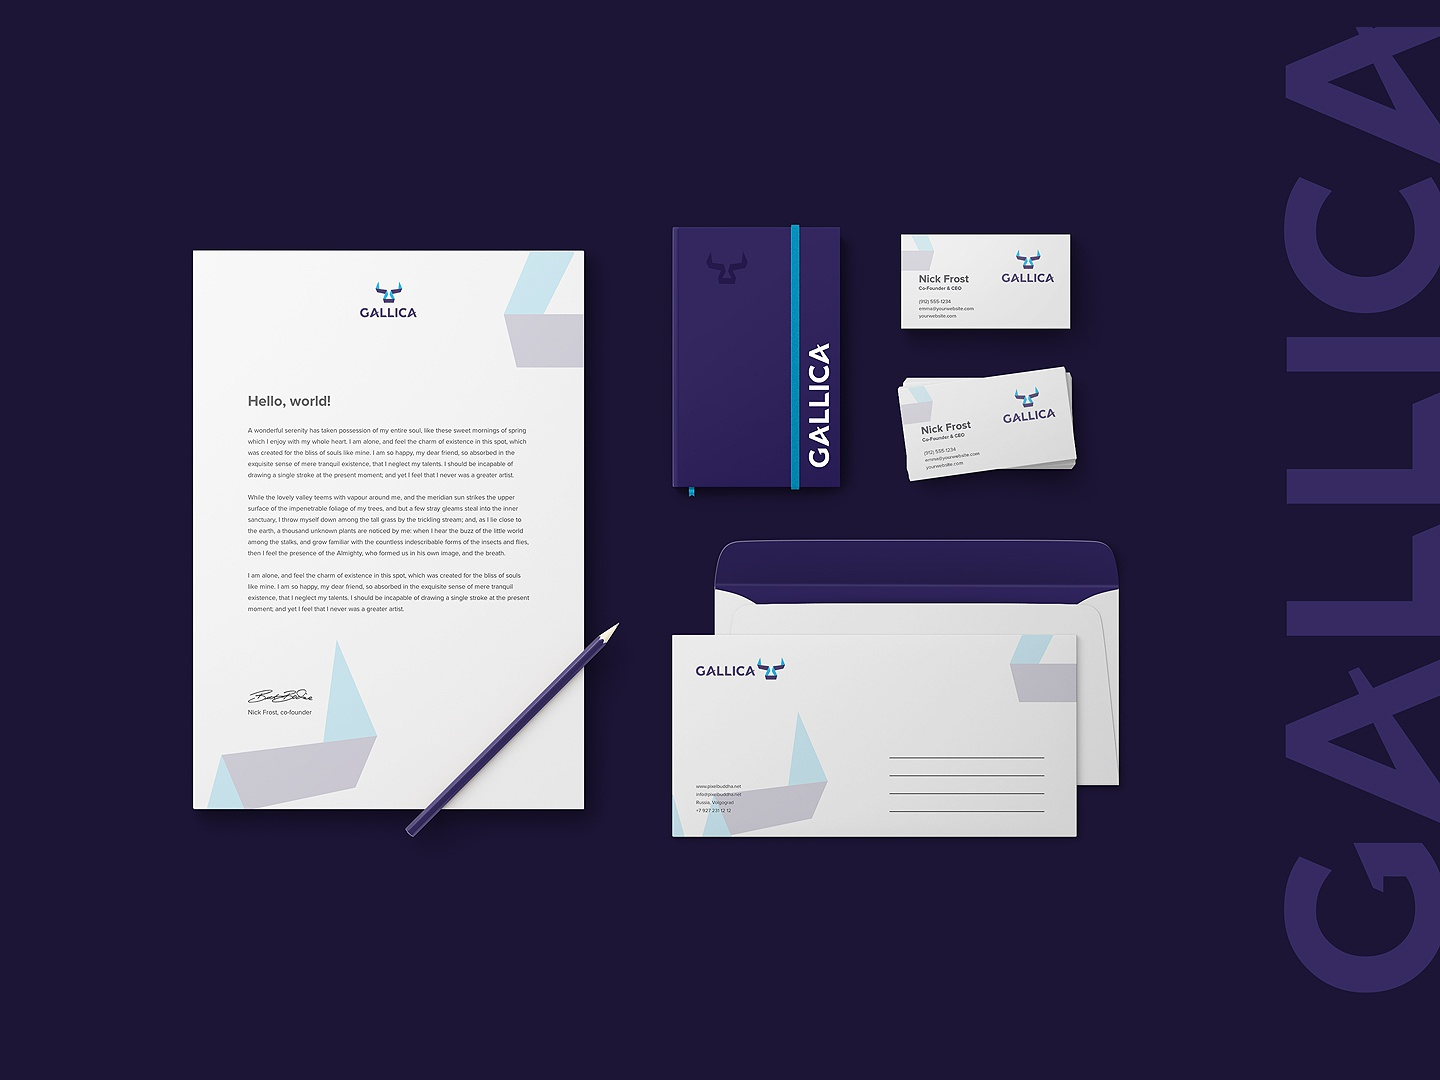 GALLICA - finance investment company by Nick Chukreev